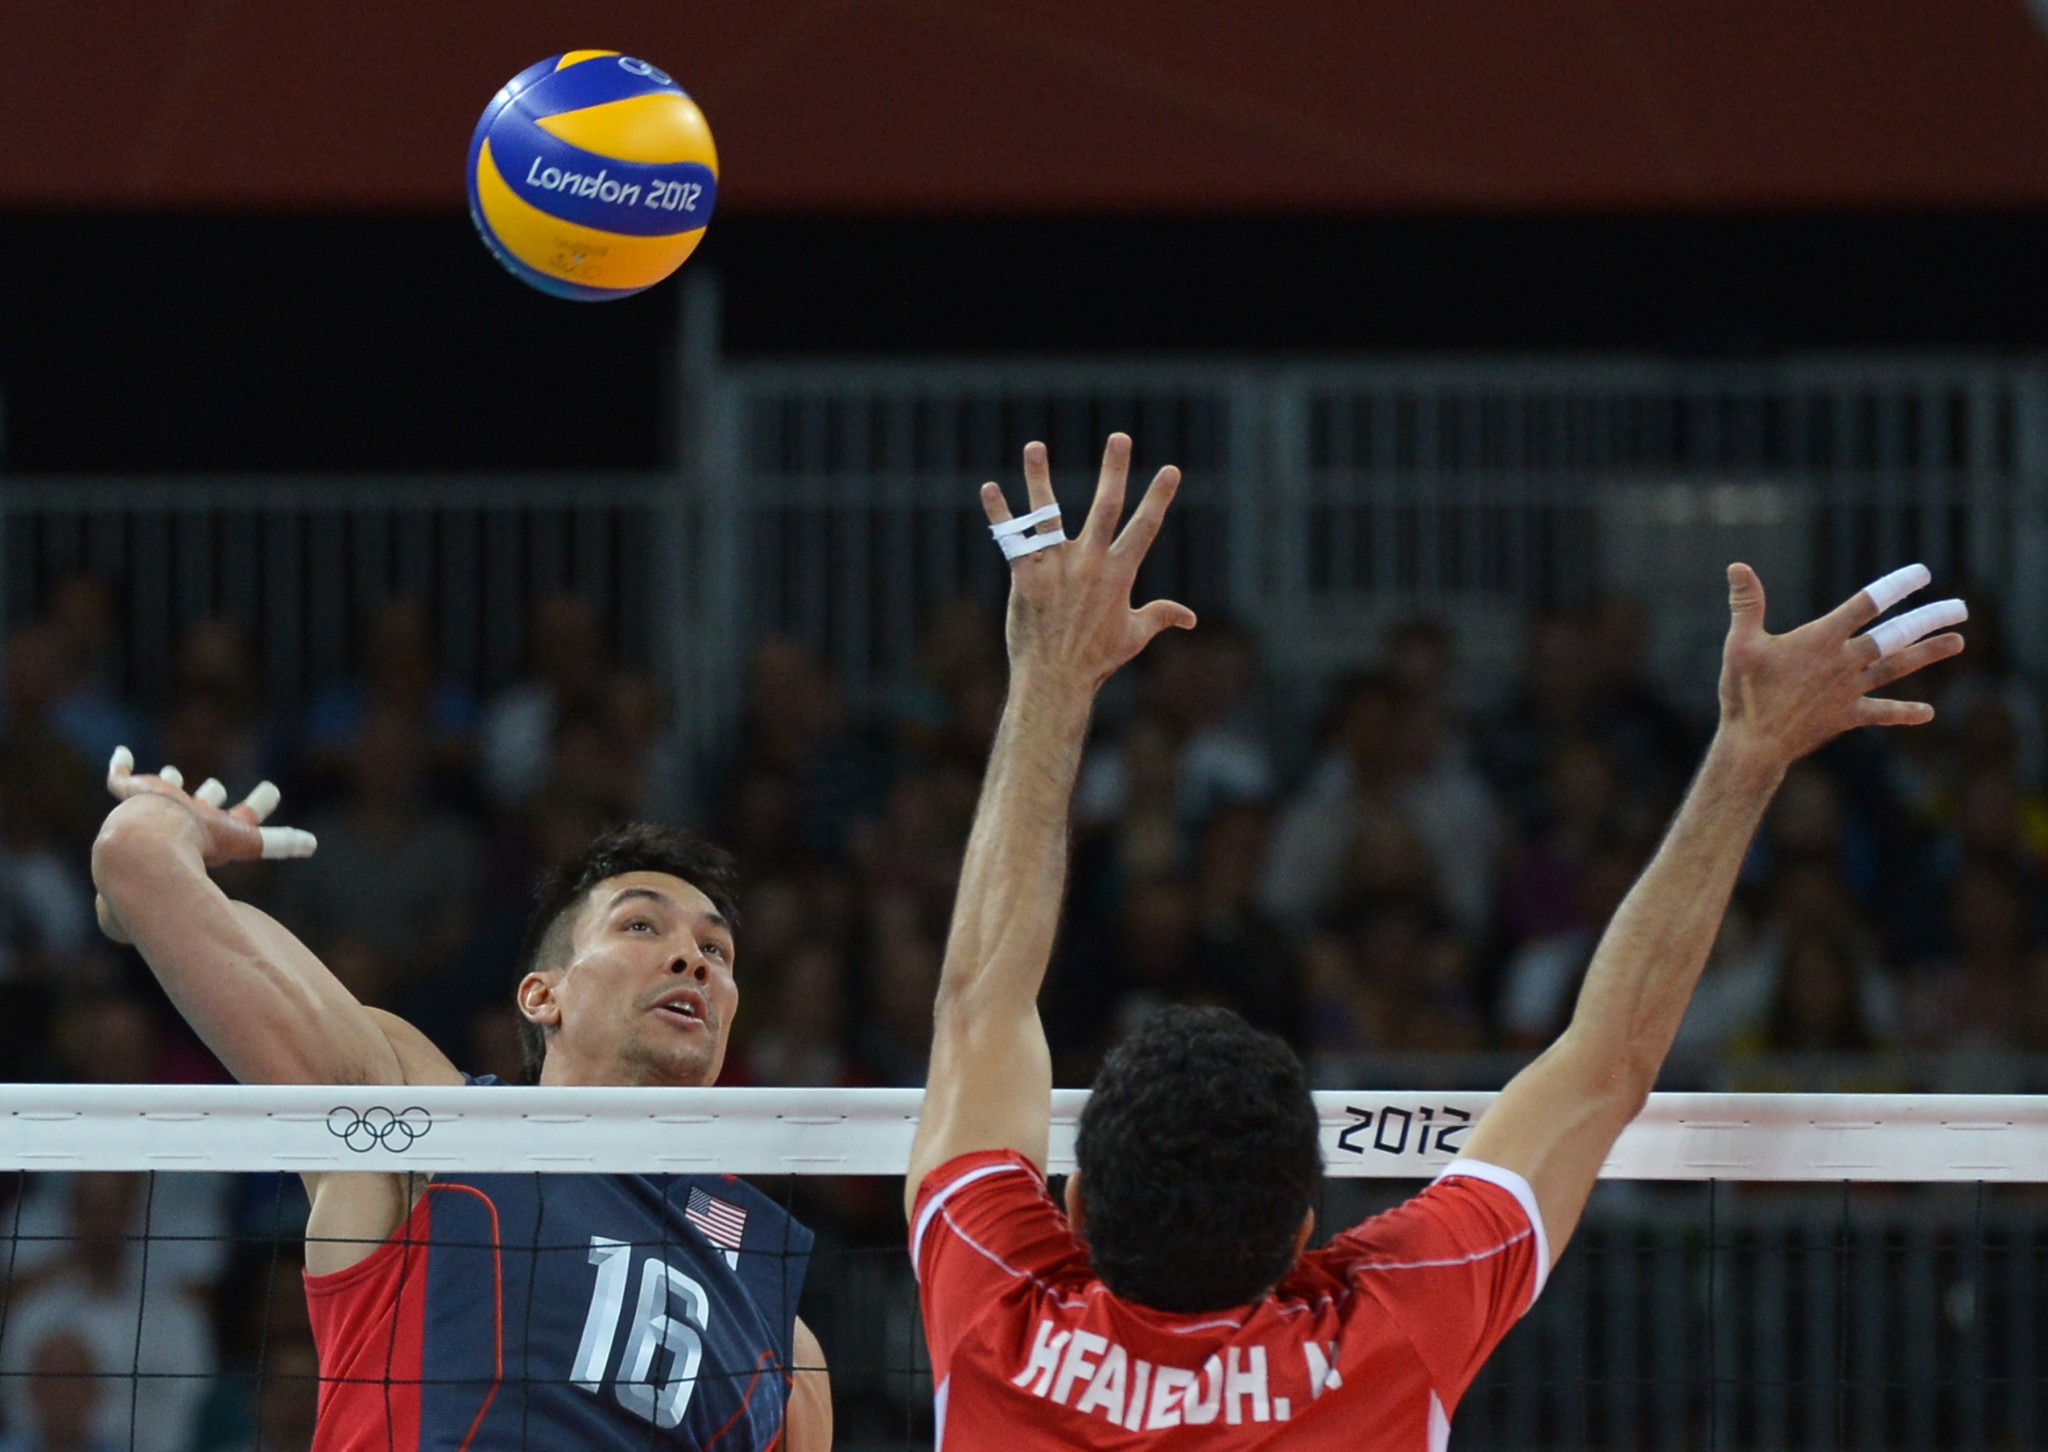 Volleyball player David McKienzie has been handed a four-year ban ©Getty Images